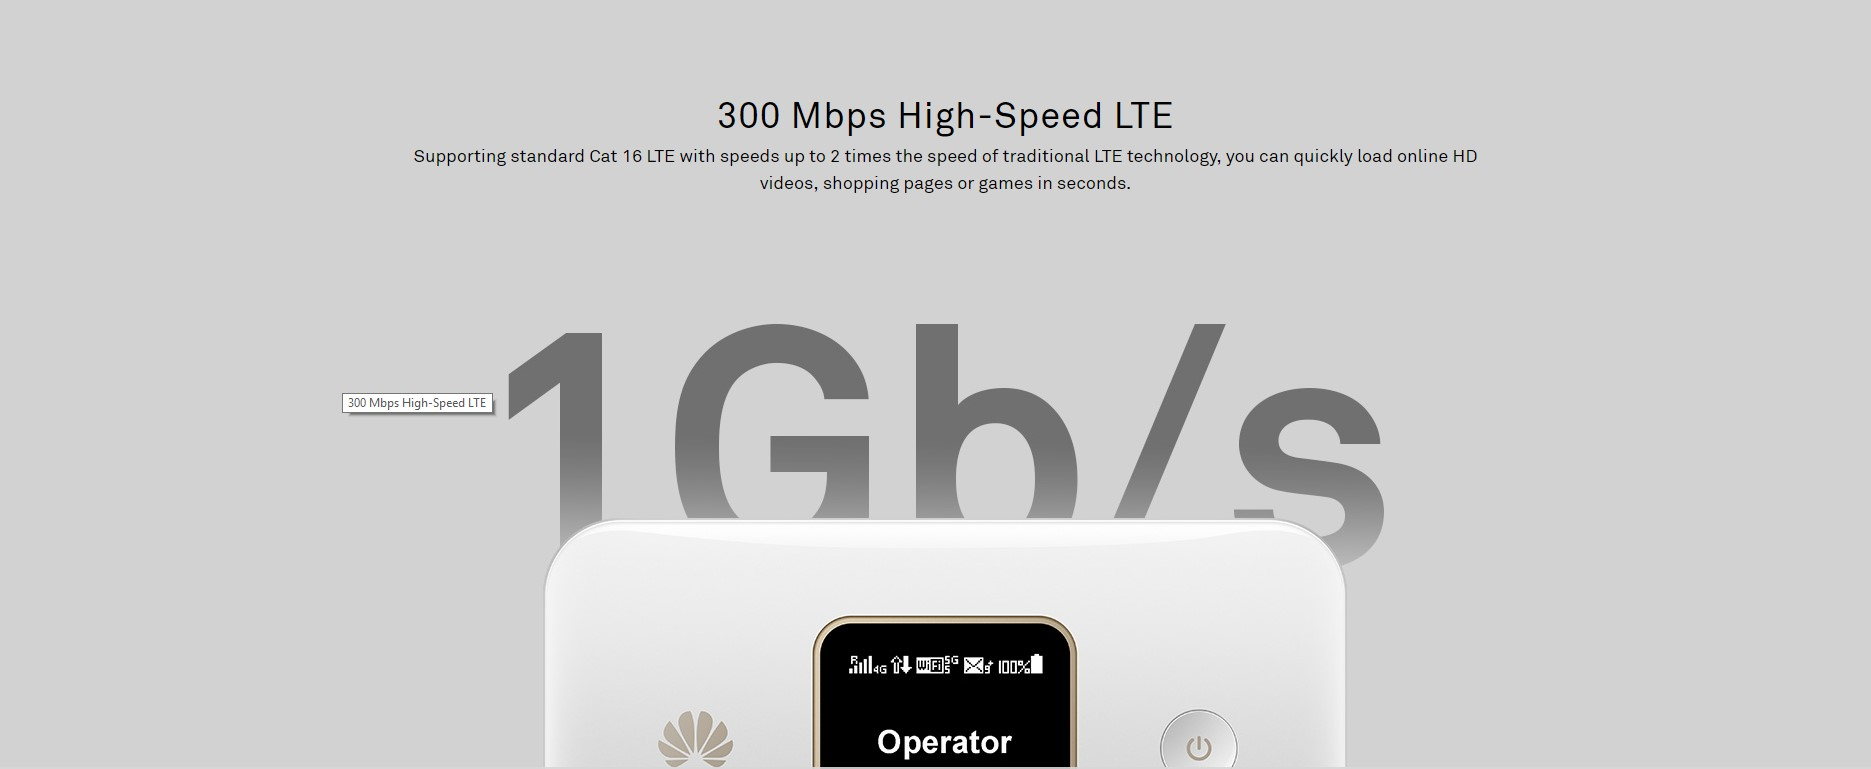 Huawei E5785 300 Mbps 4G LTE 43 2 Mpbs 3G Mobile WiFi, 3G globally, 16  Simultaneous Connection, 12